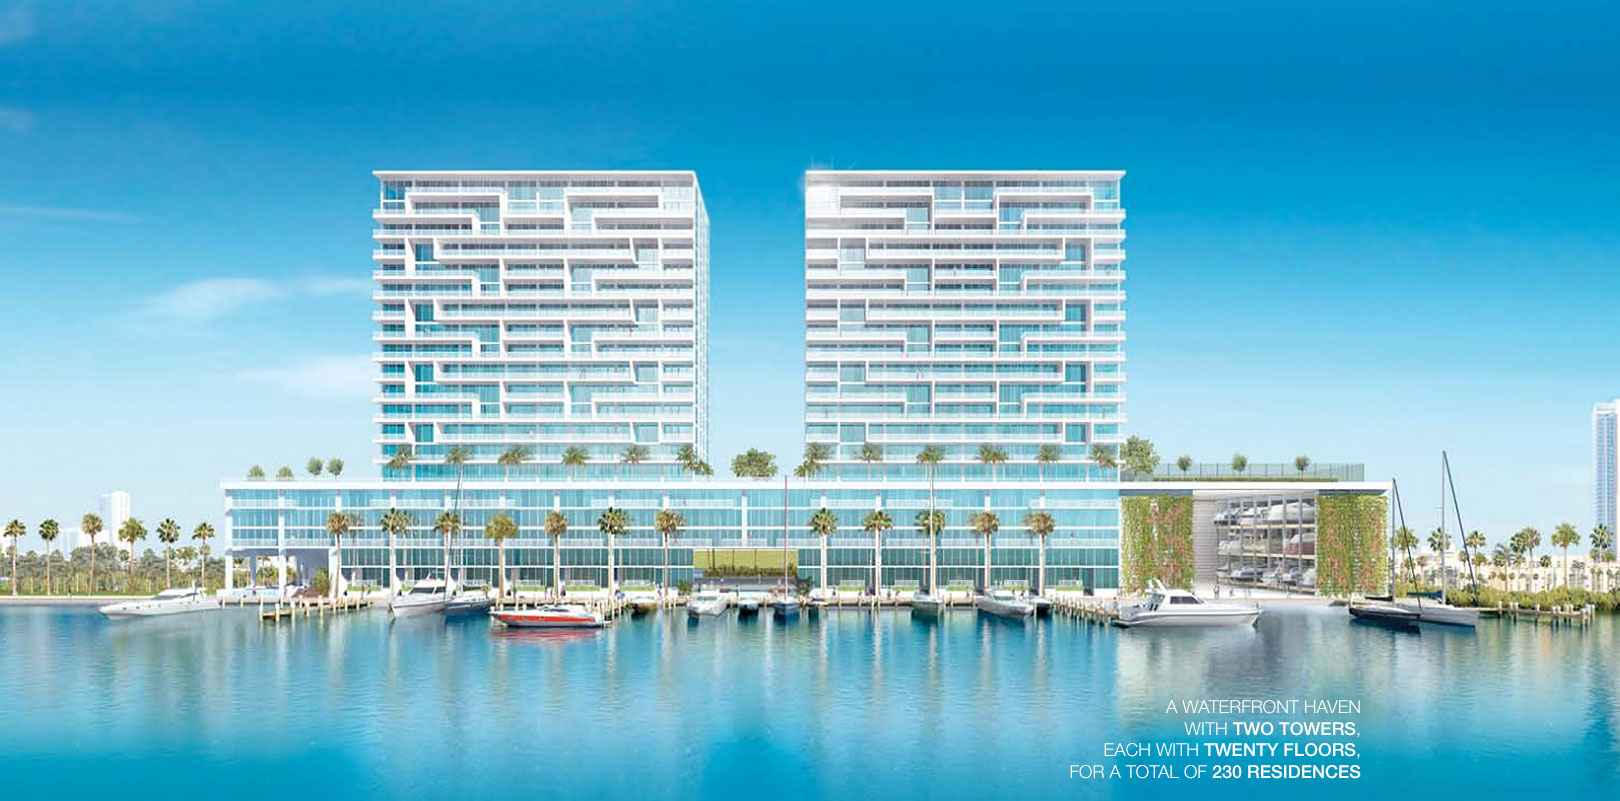 A waterfront haven, with two towers, each with 20 floors, for a total of 230 residences